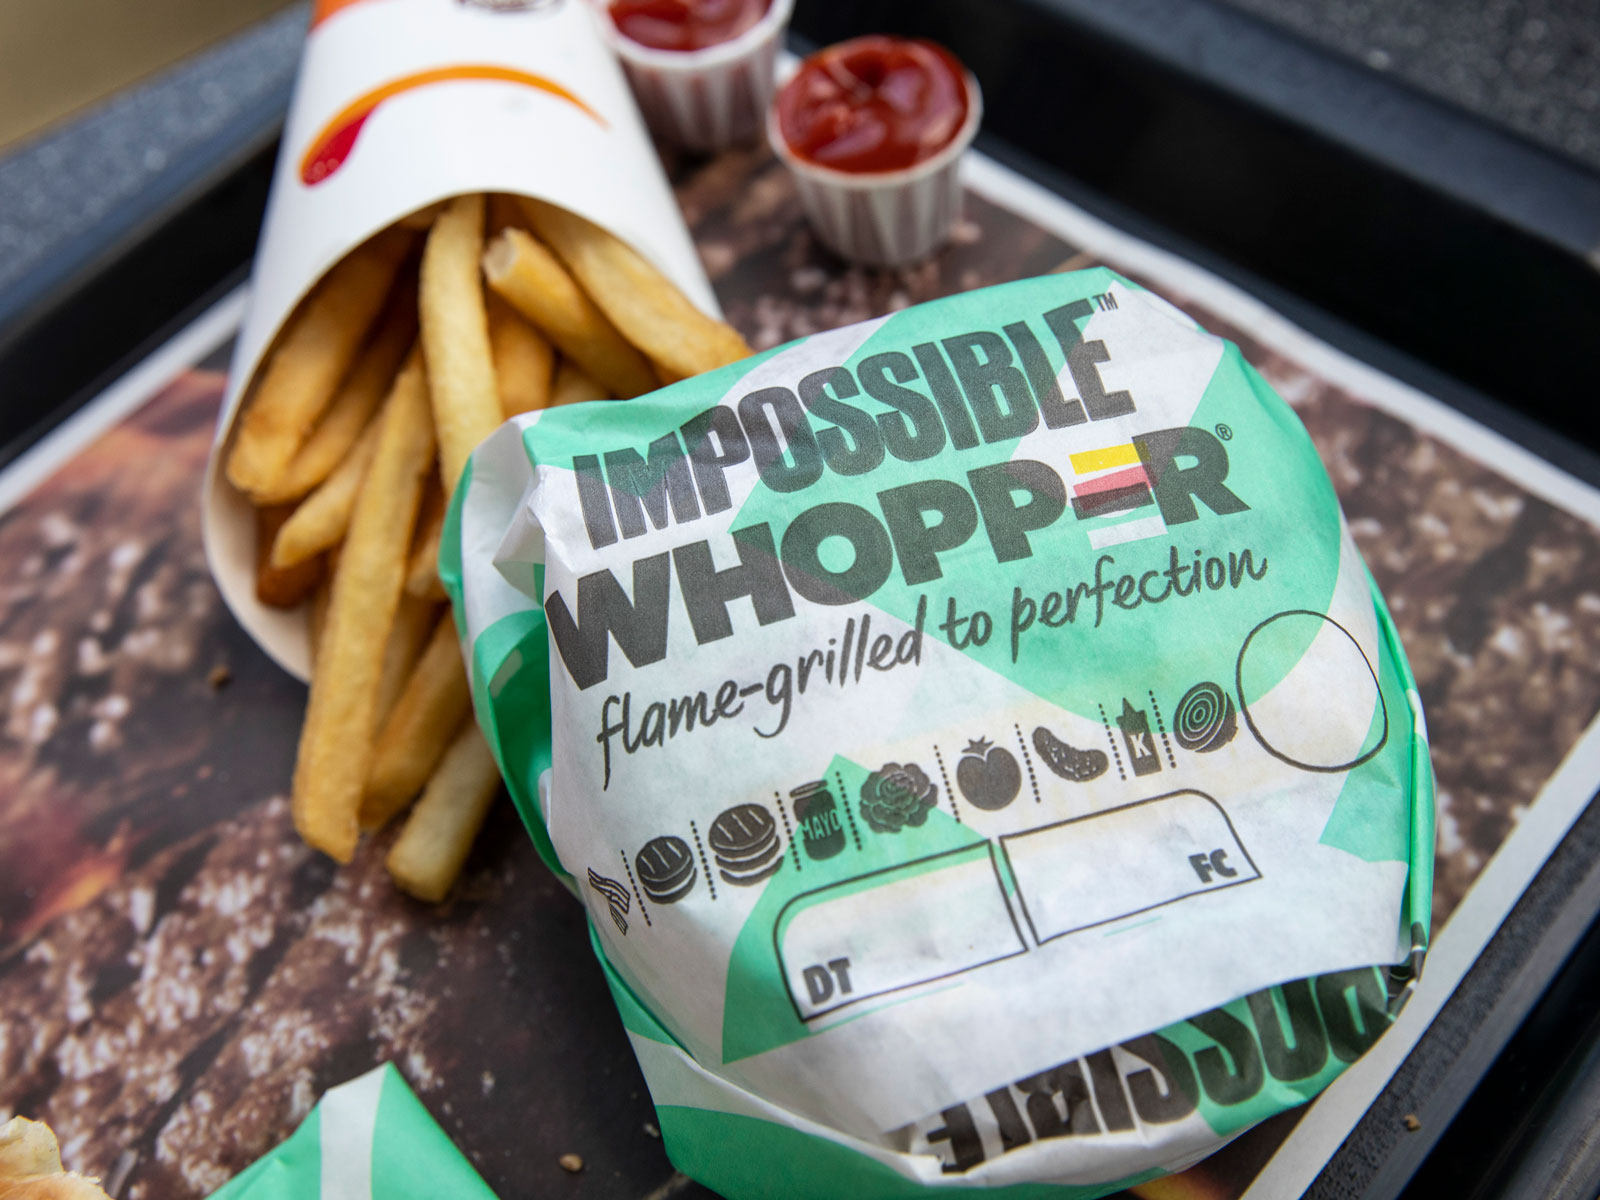 impossible-whopper-lawsuit-FT-BLOG1119.jpg